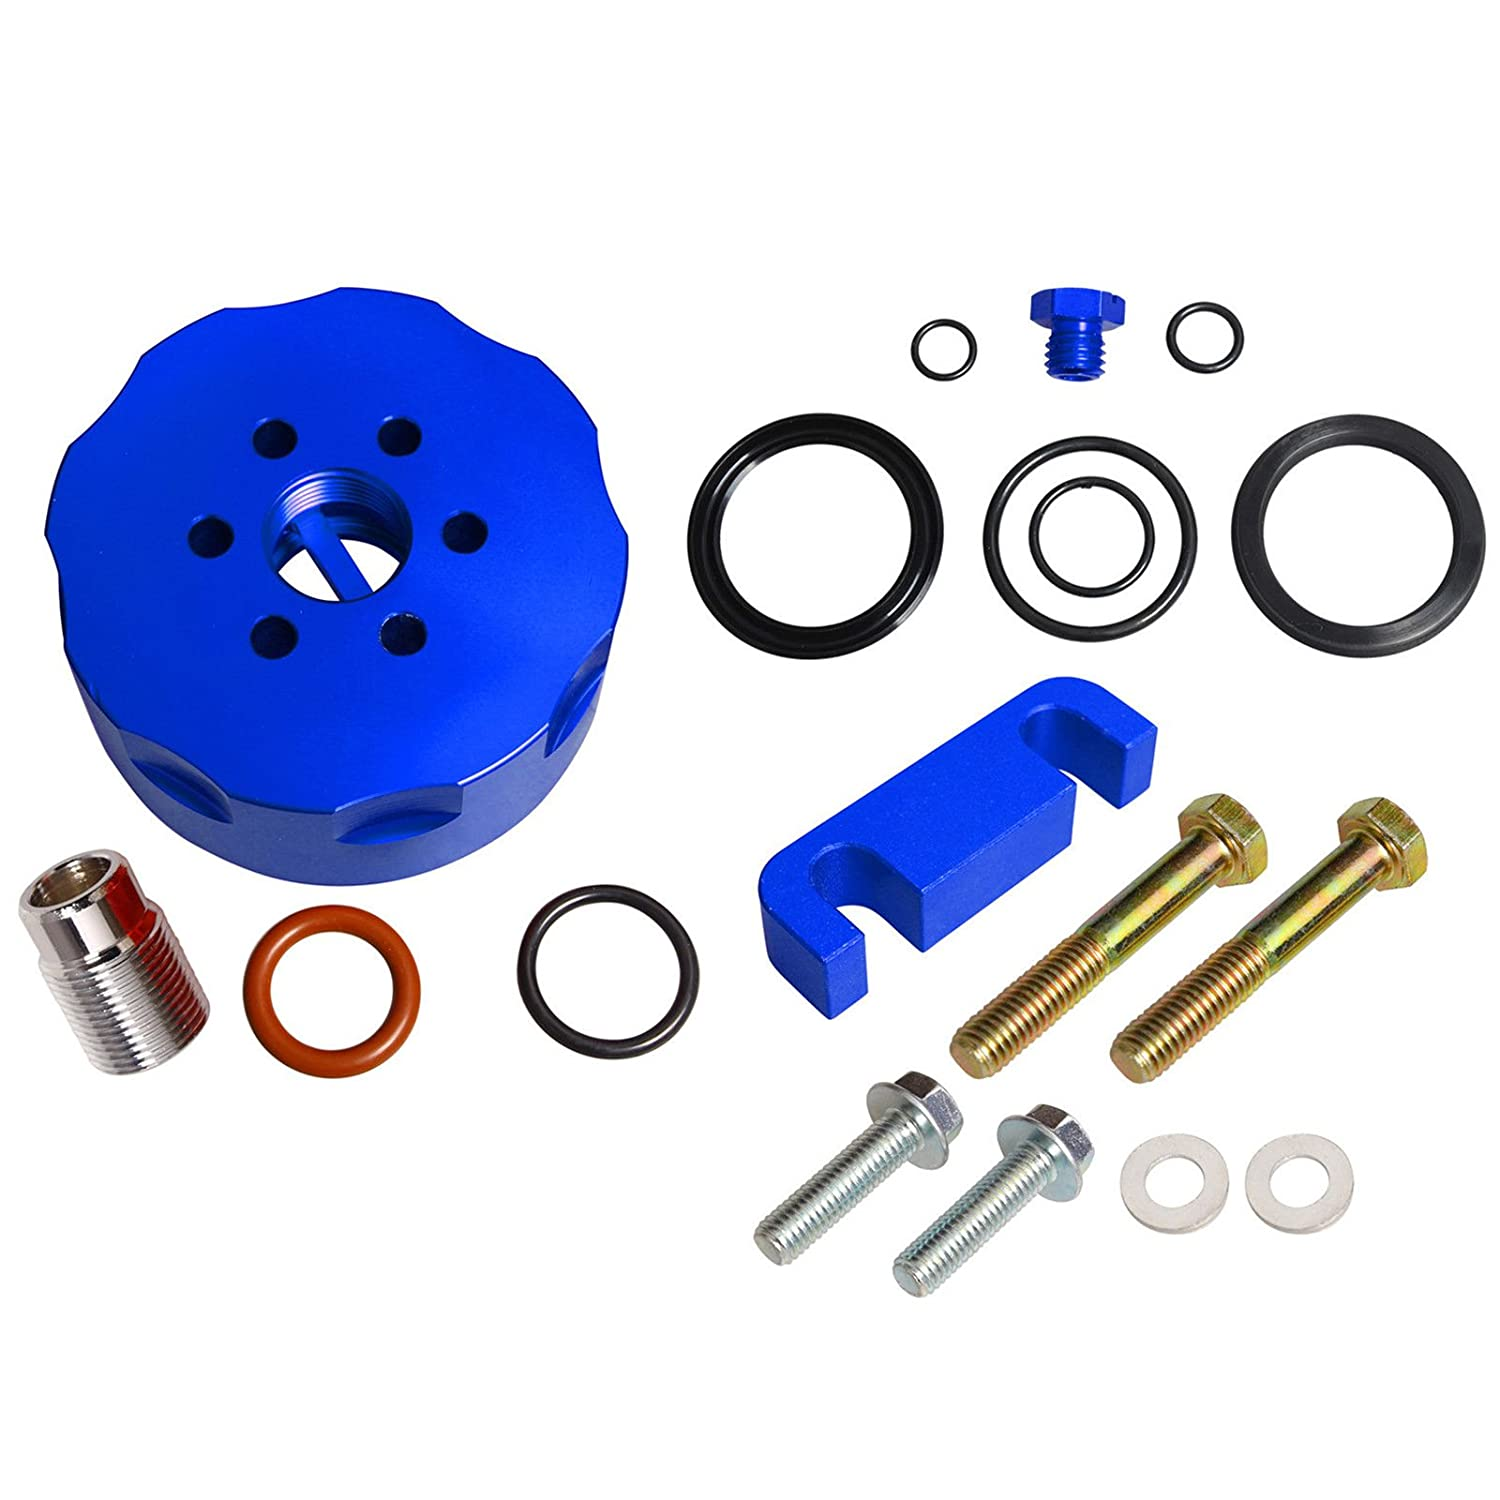 Amazon.com: BLACKHORSE-RACING For Chevy Duramax GMC 6.6L Blue CAT Fuel  Filter Adapter & Spacer & Bleeder & Seal Kit: Automotive